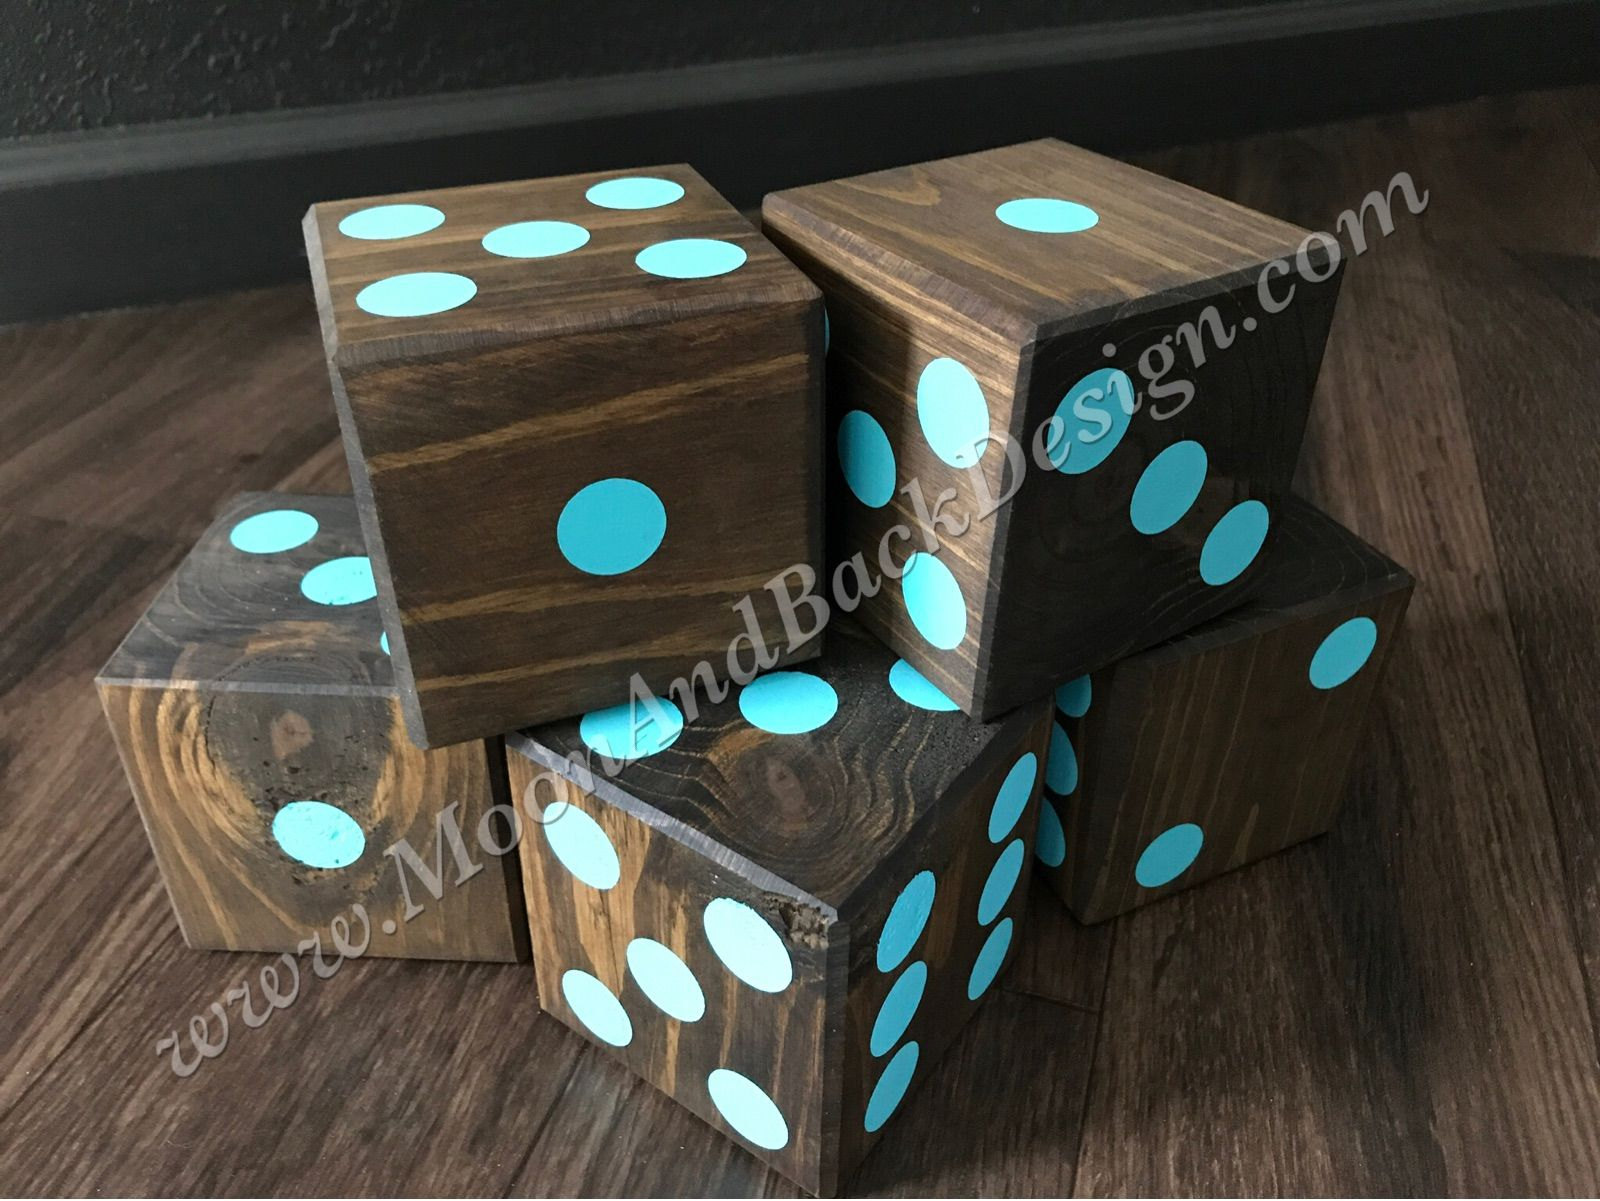 Custom made large wooden dice for outdoor yard games